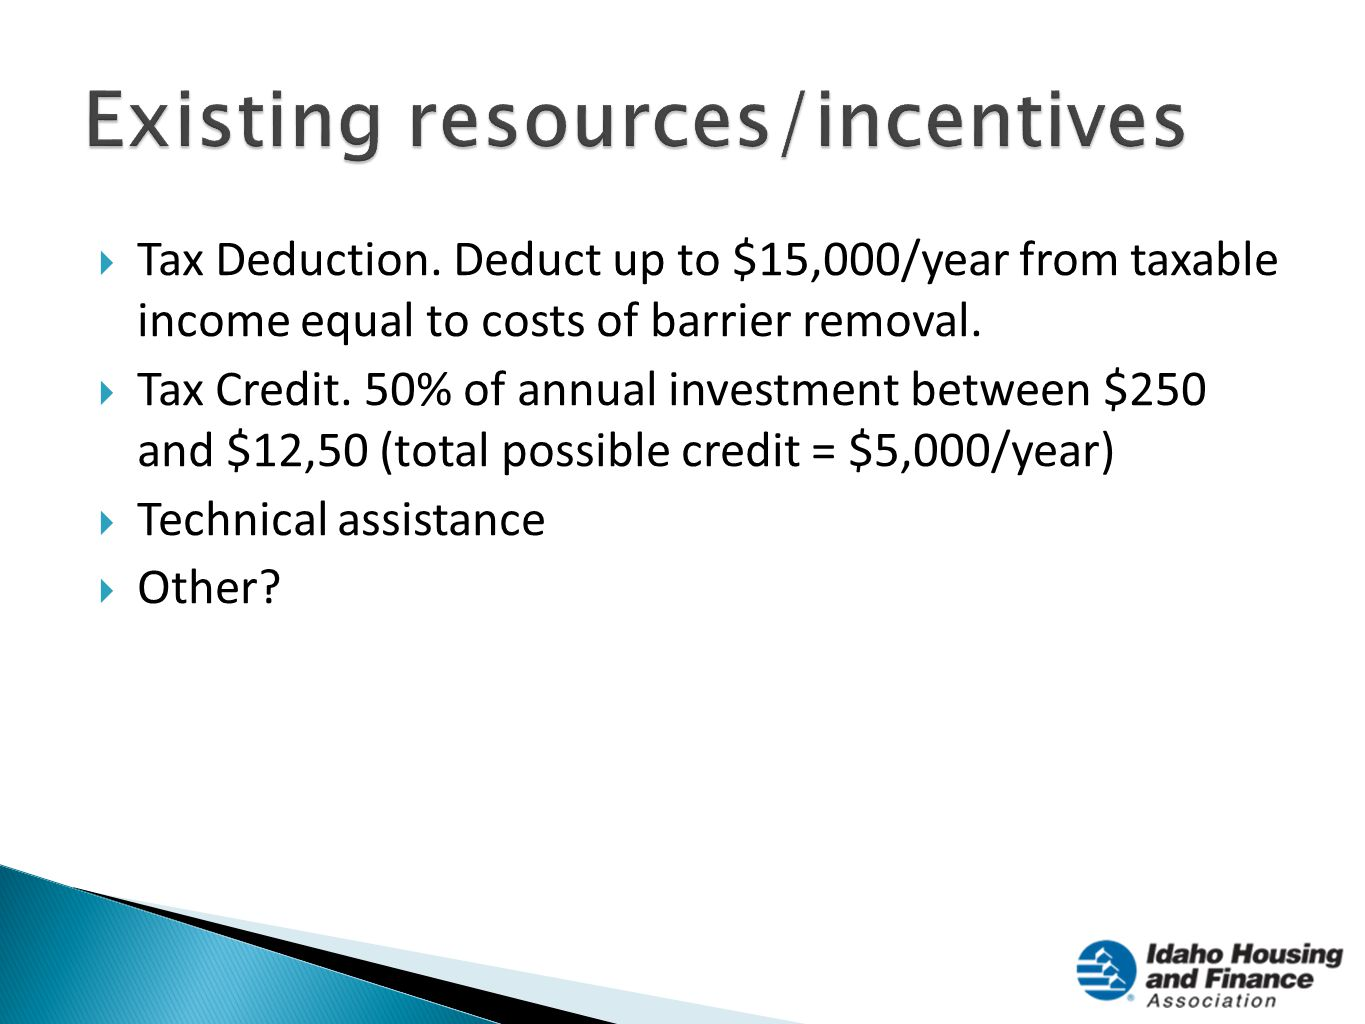  Tax Deduction. Deduct up to $15,000/year from taxable income equal to costs of barrier removal.